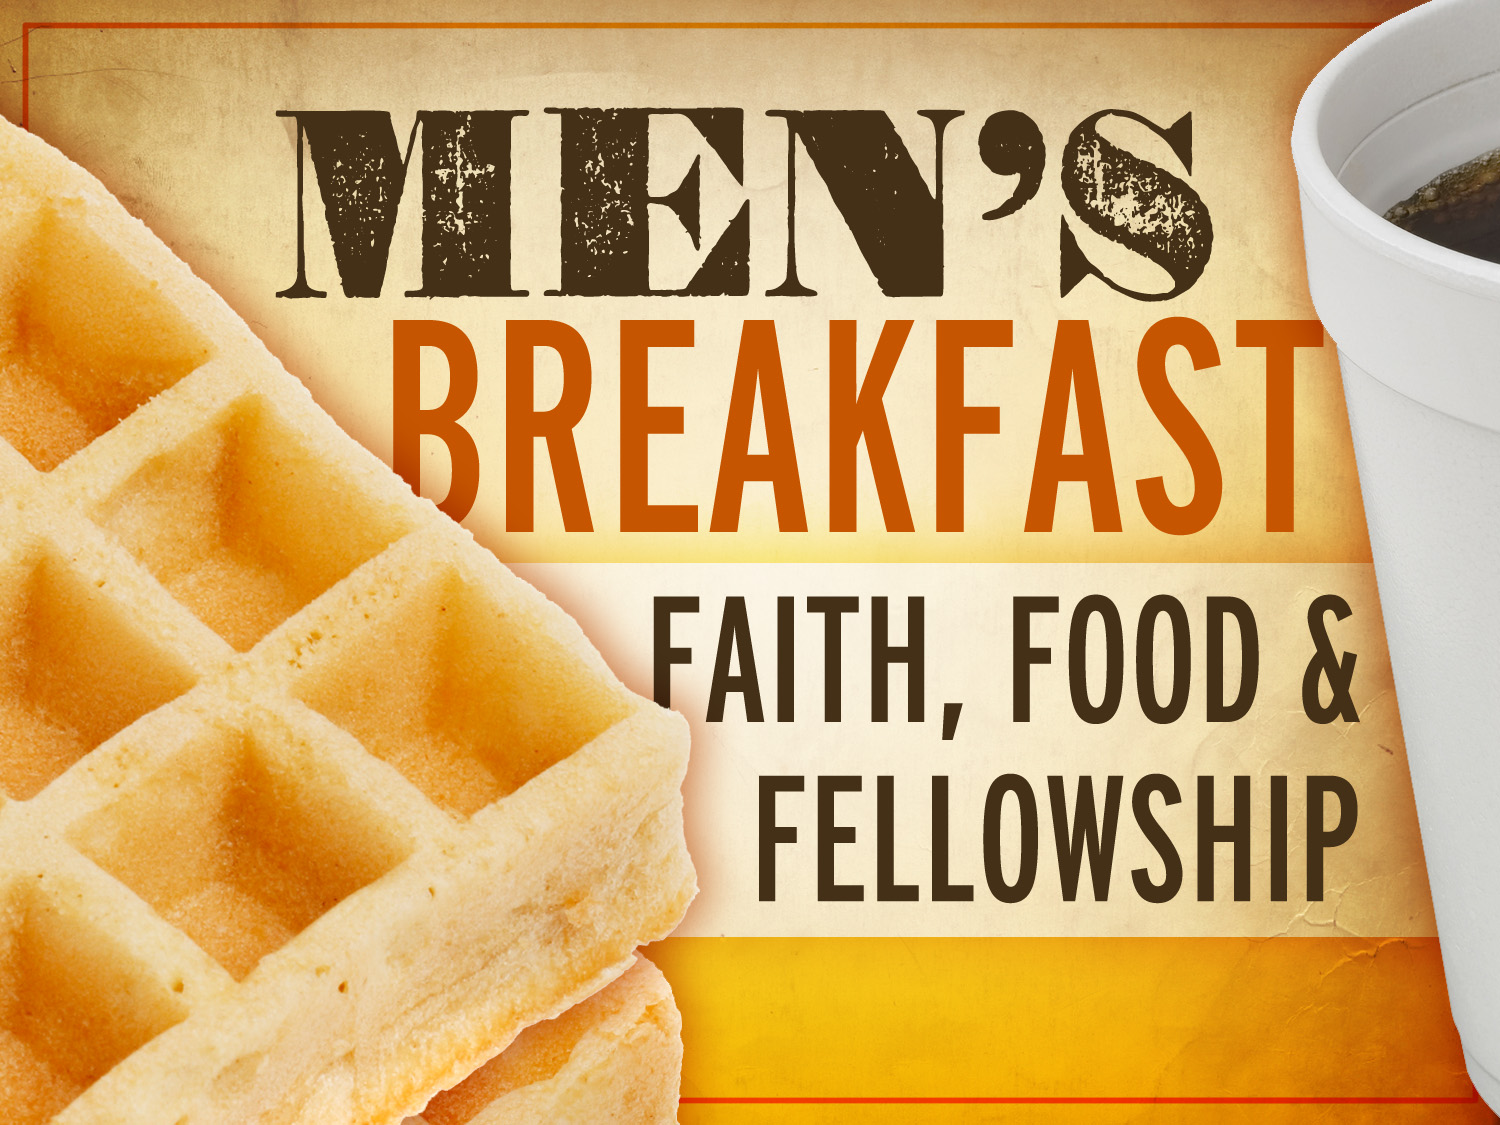 Men's Prayer Breakfast @ Fellowship Baptist Church | Baxter Springs | Kansas | United States